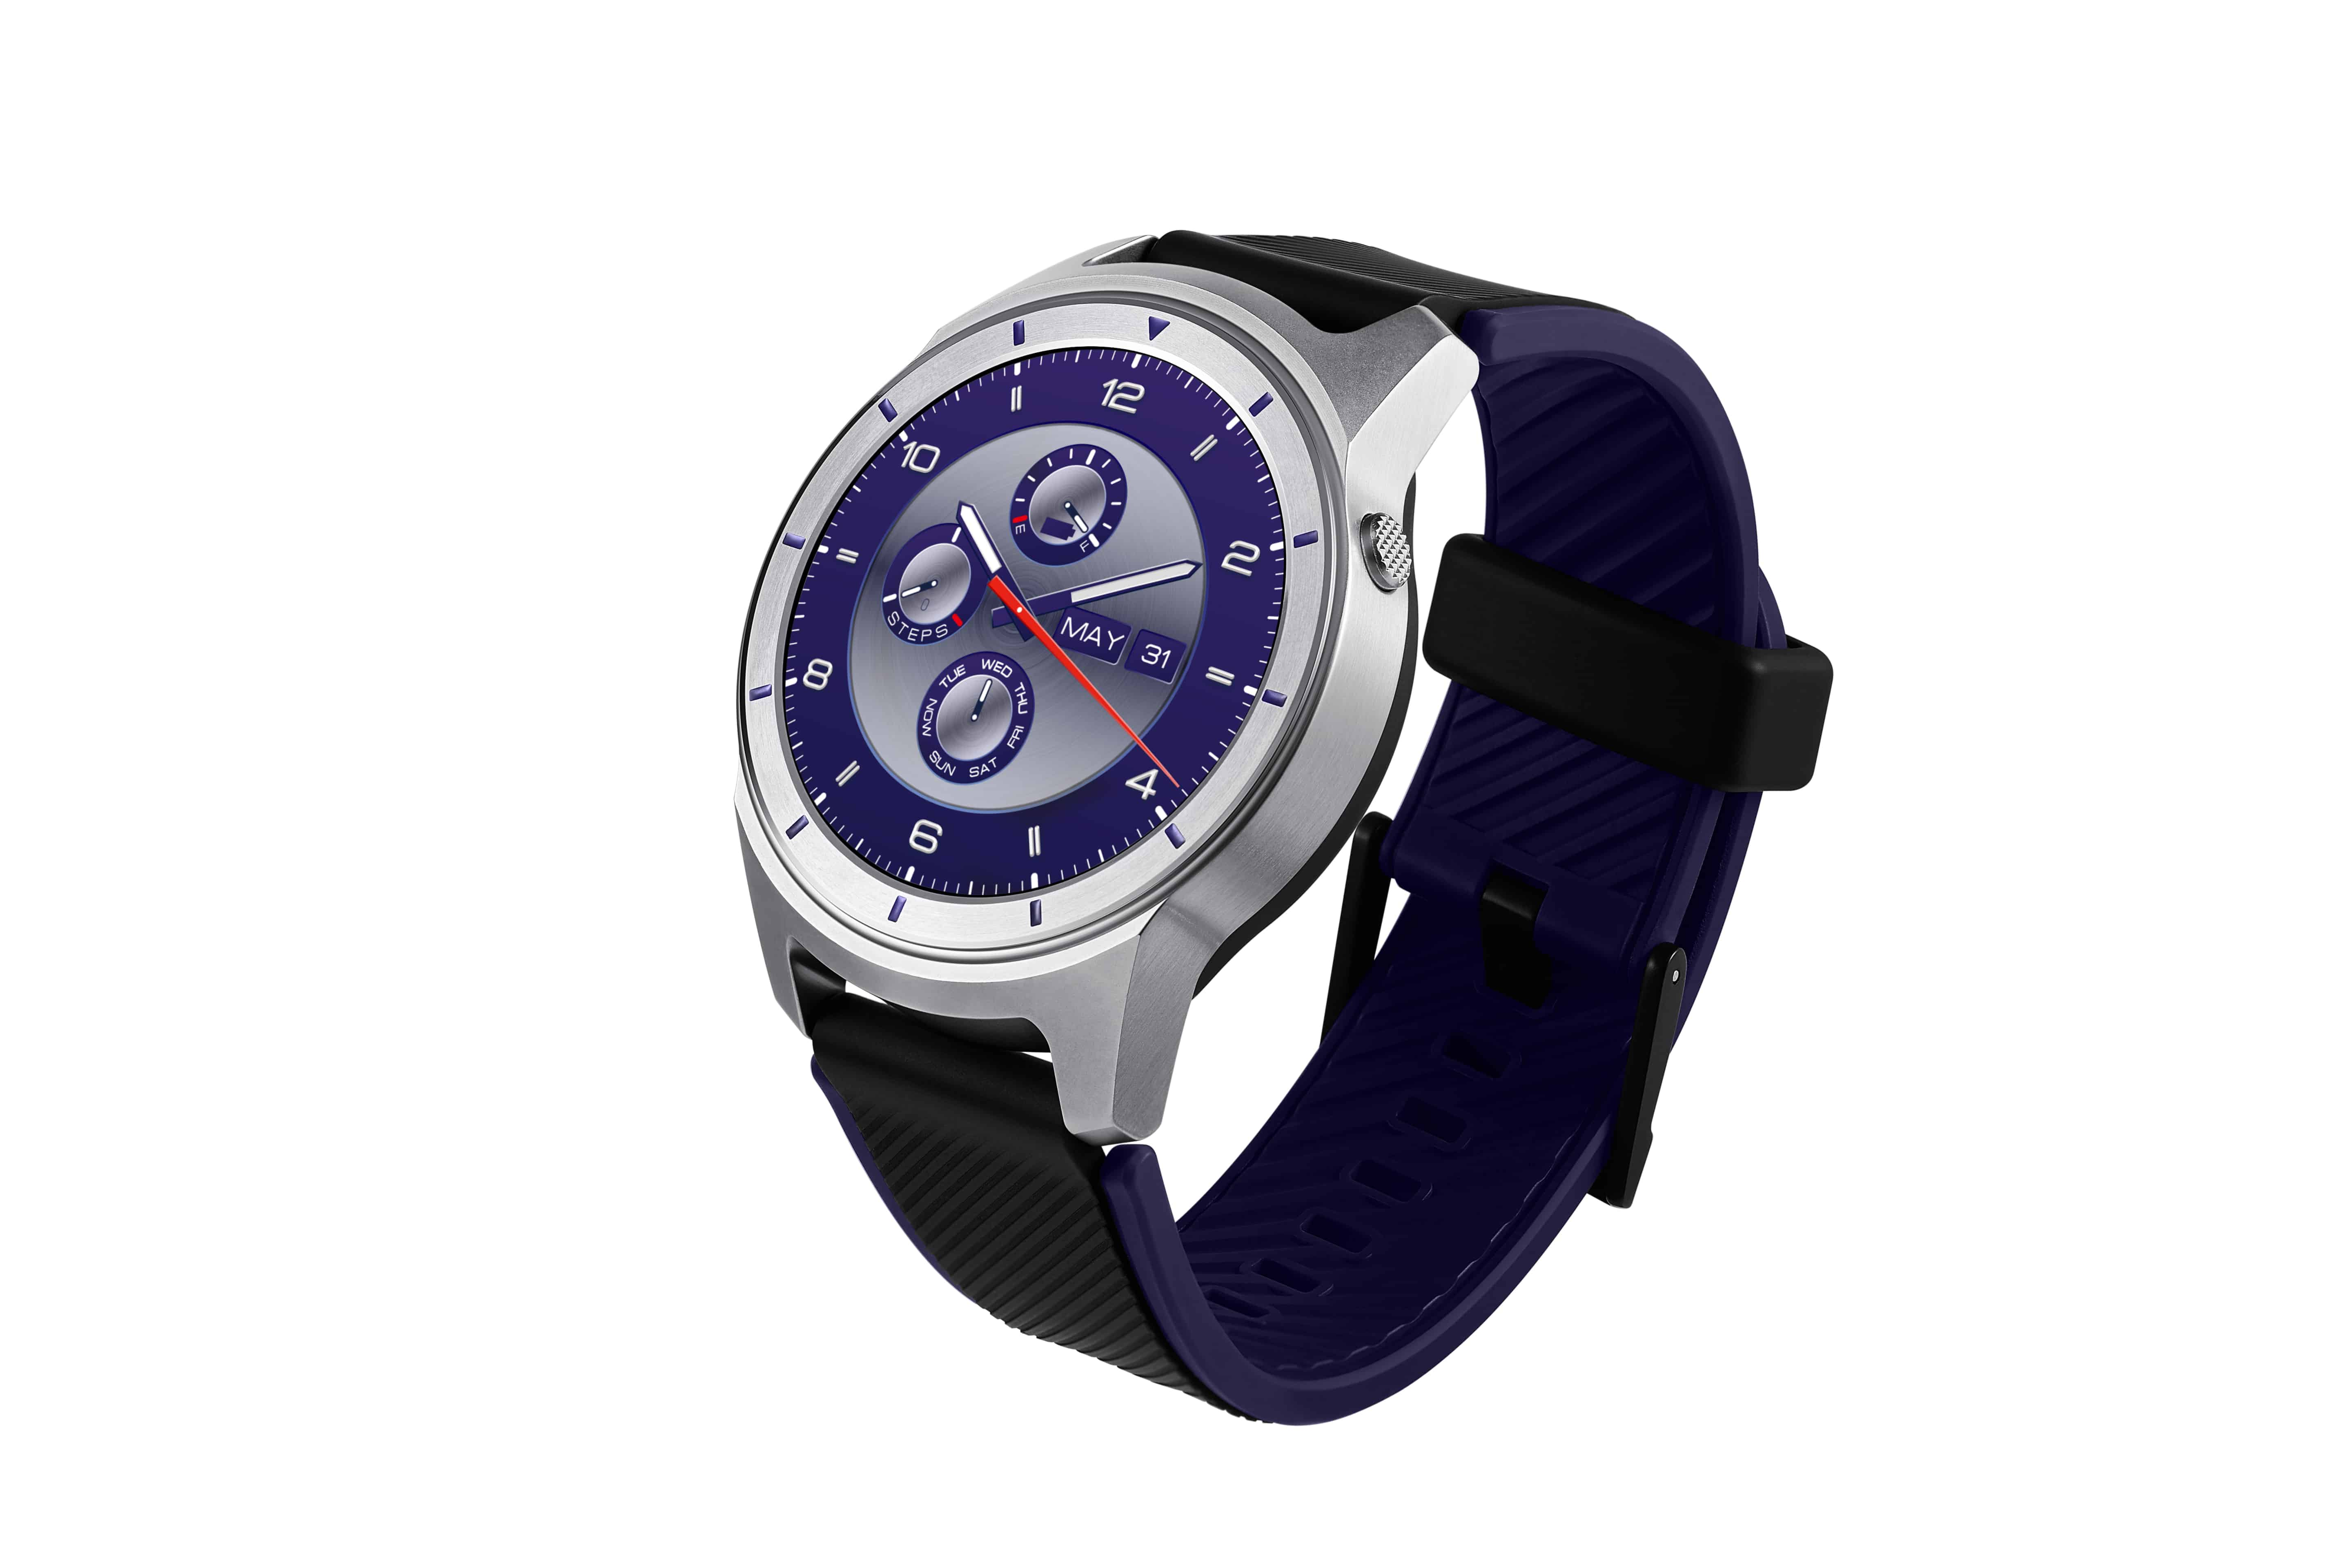 Popular Questions zte quartz smartwatch specs providers